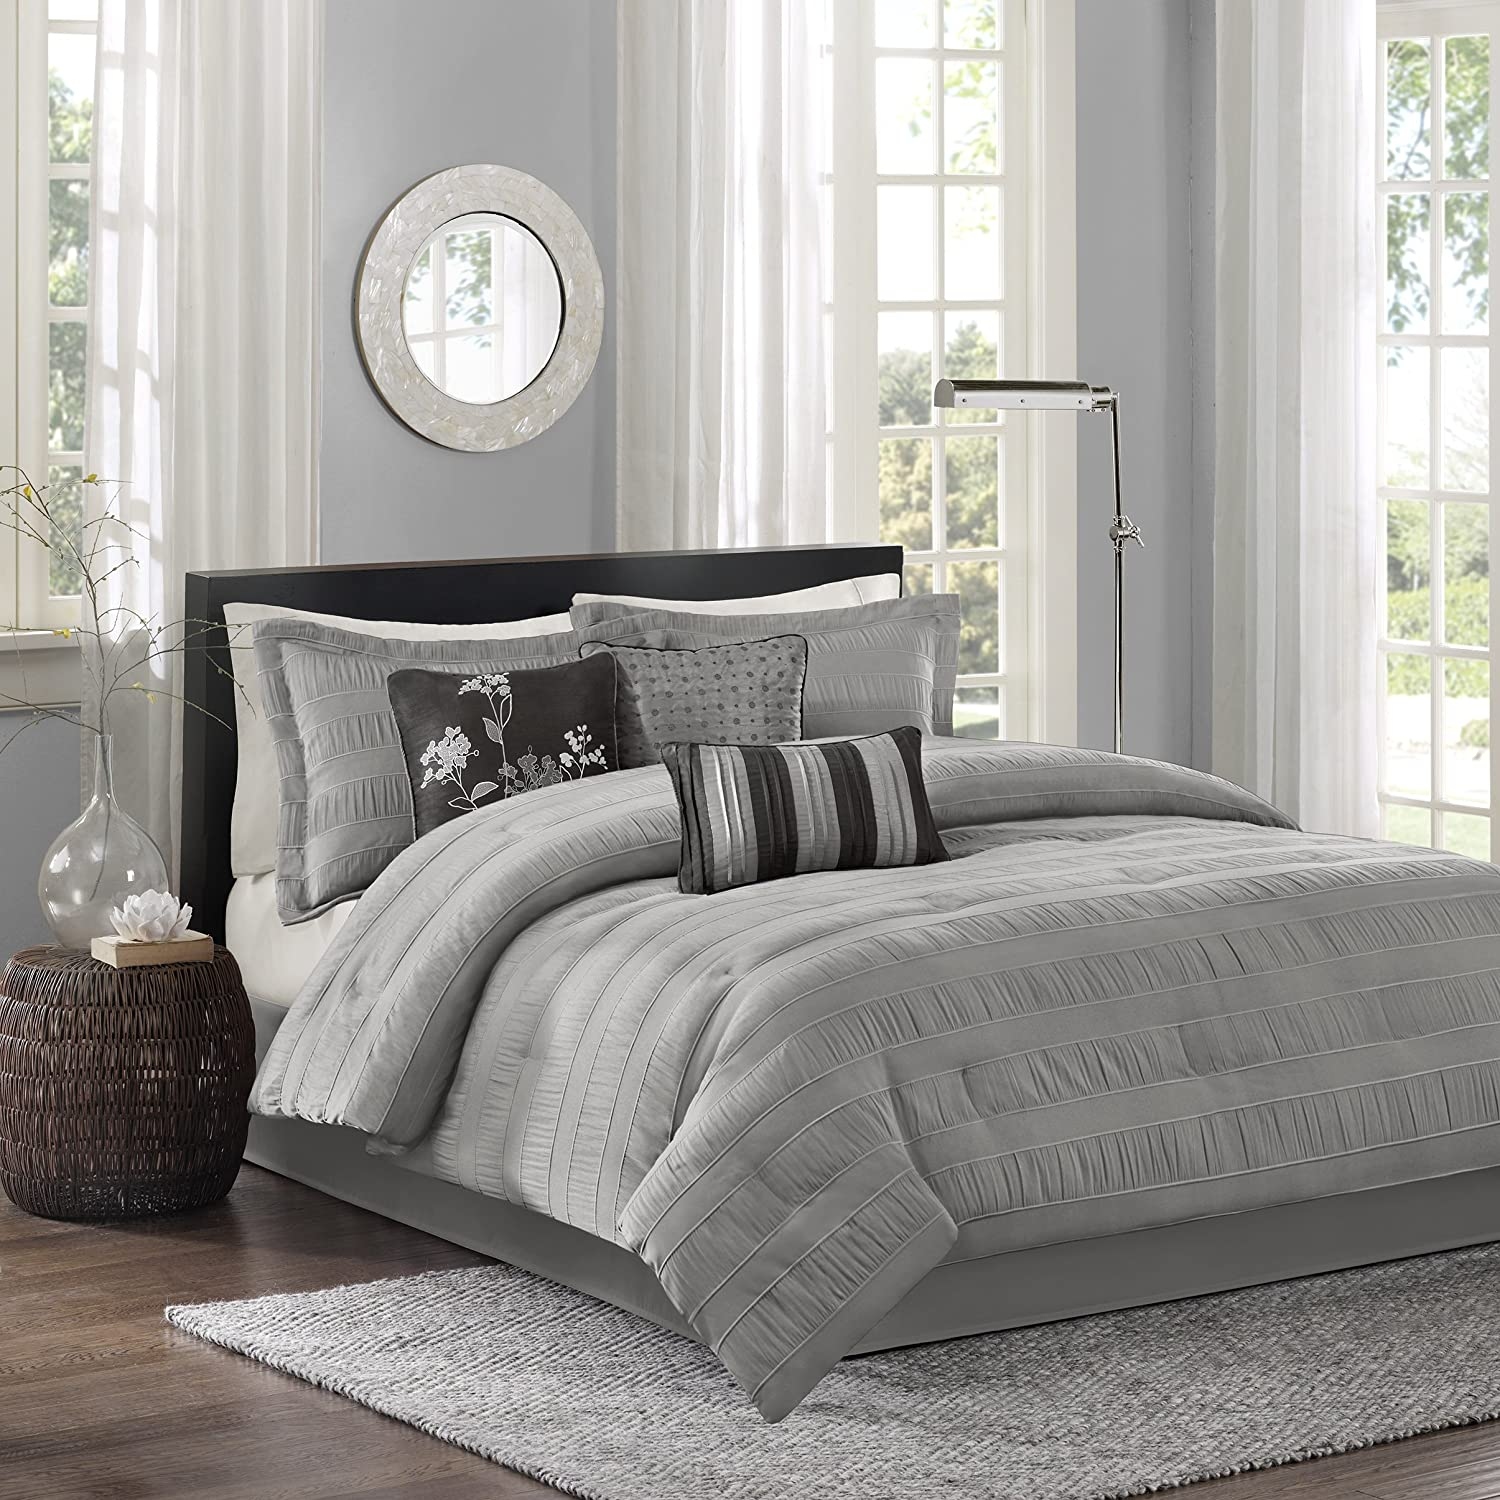 Madison Park Hampton 7 Piece Comforter Set, Queen, Grey